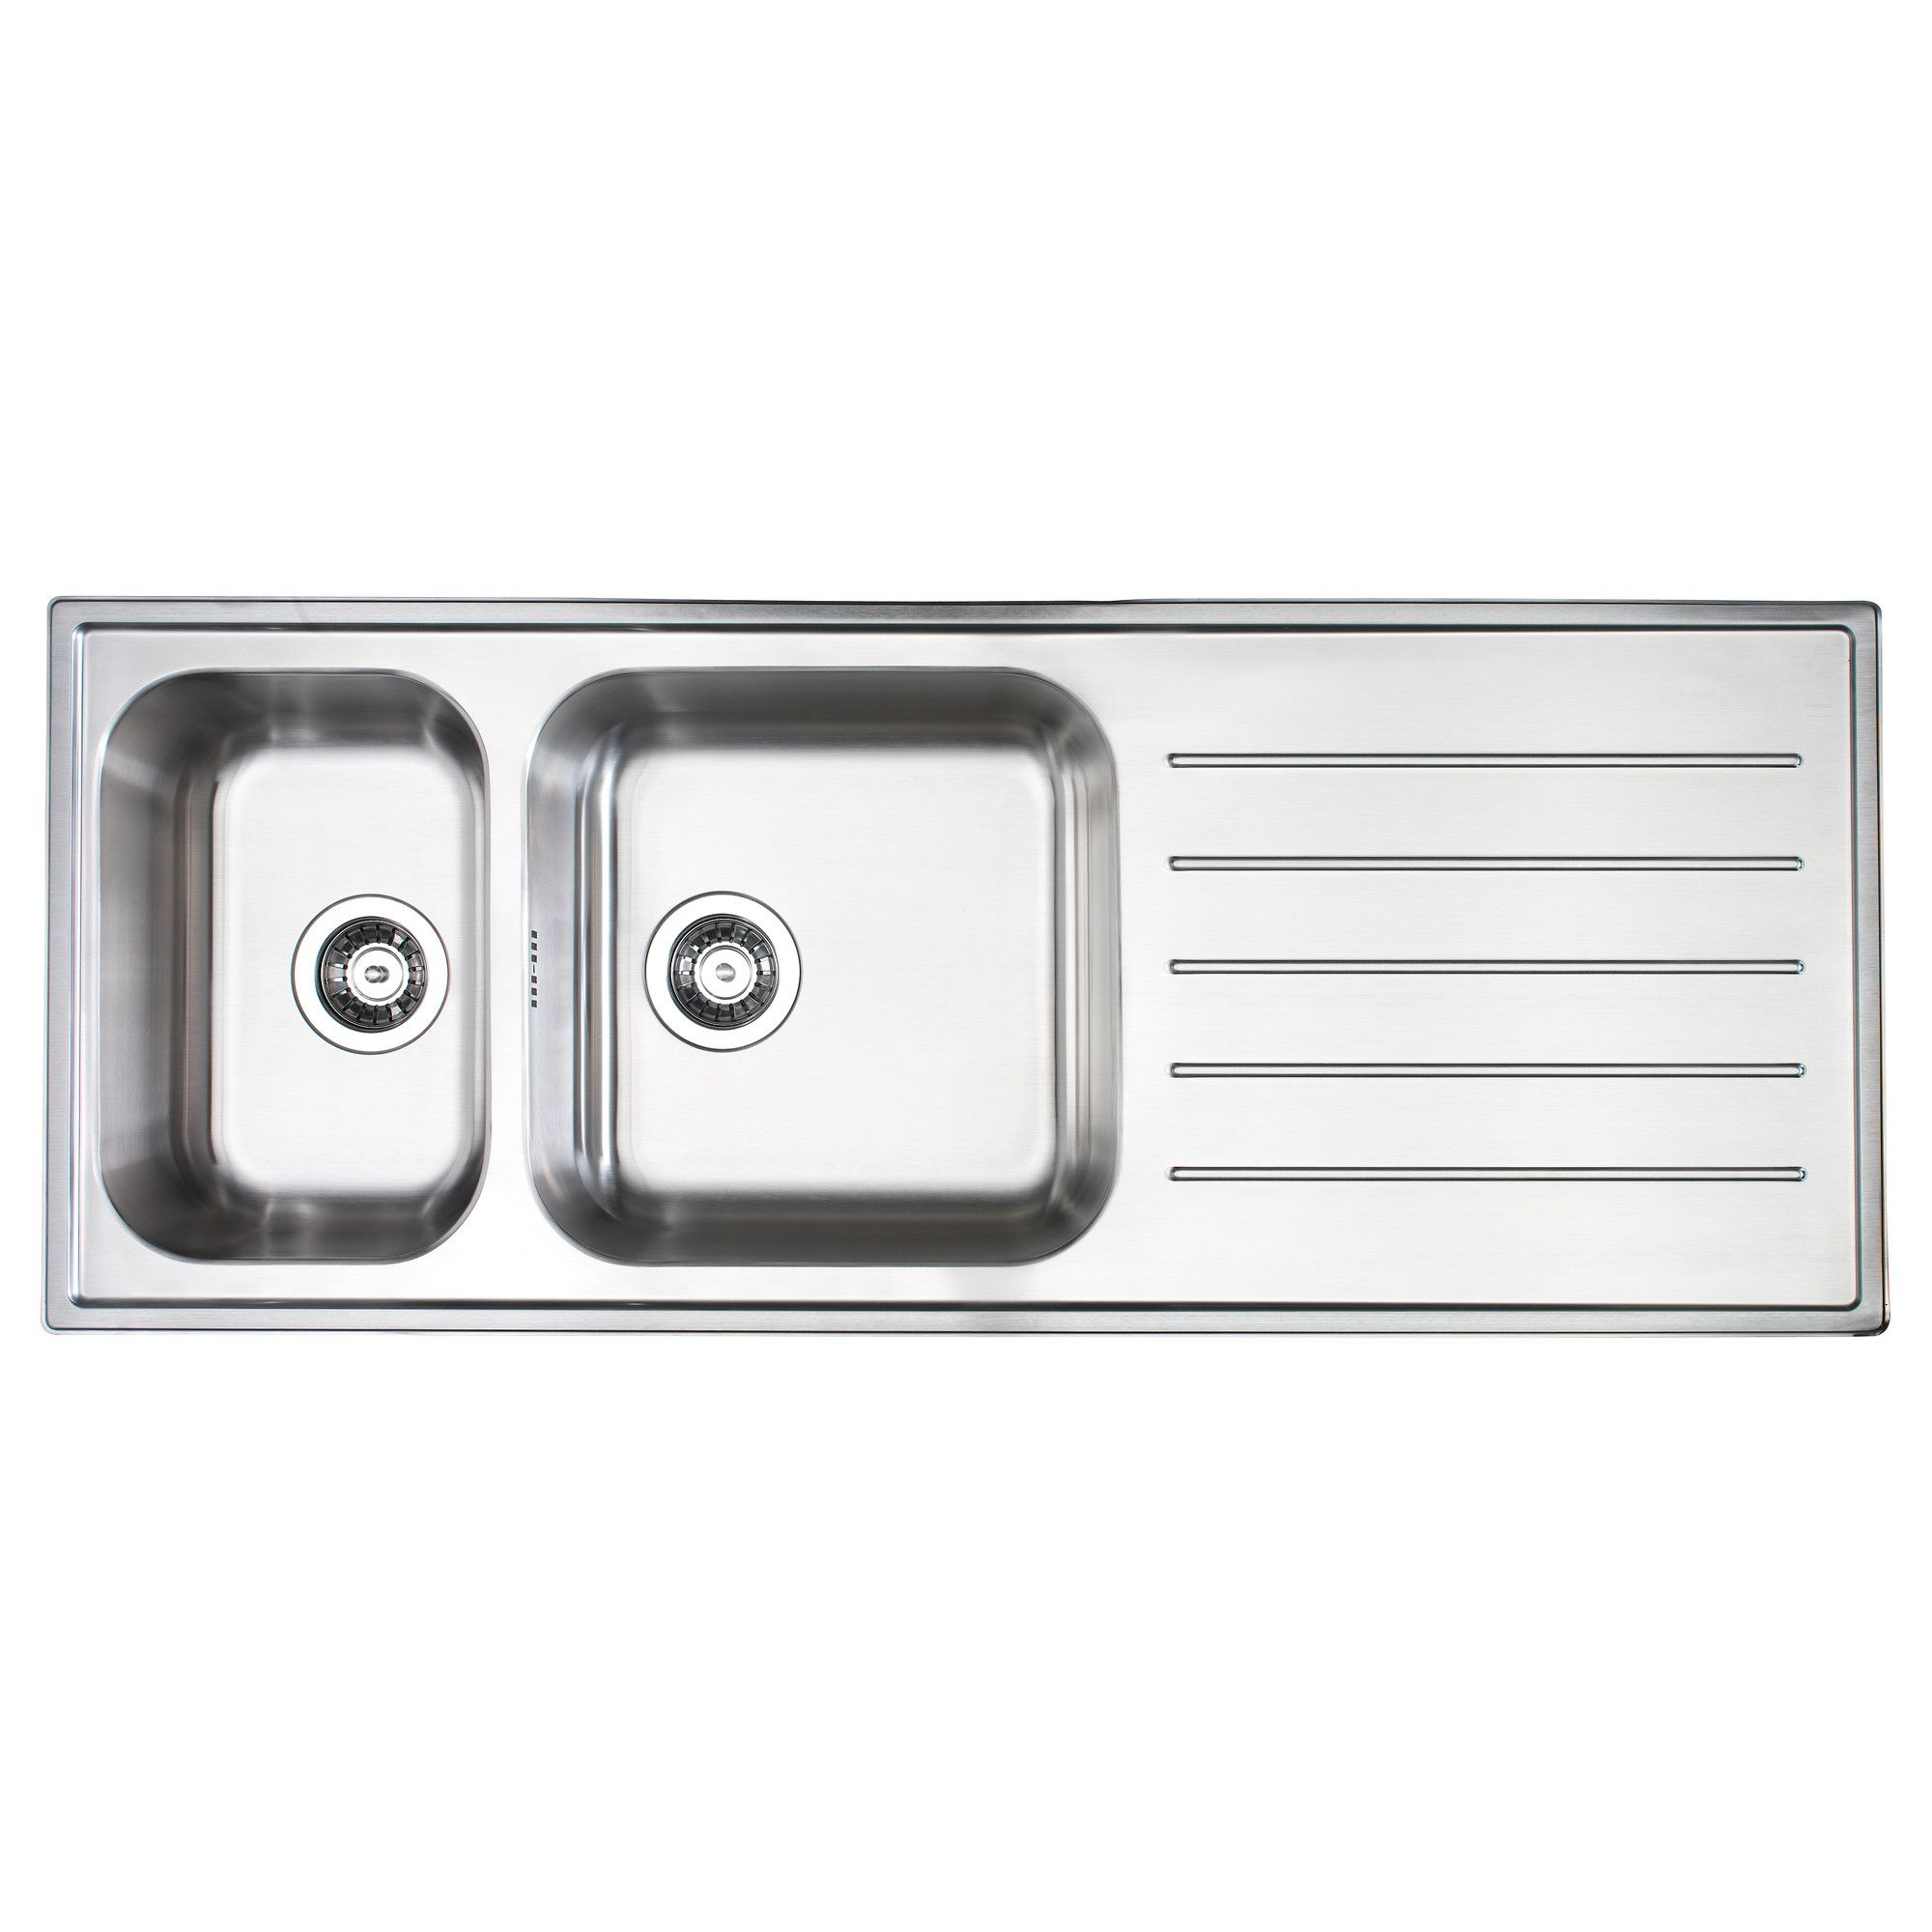 BOHOLMEN 2 Bowl Inset Sink With Drainer   IKEA Bowls The Right Way Round:  Rinse, Wash, Drain